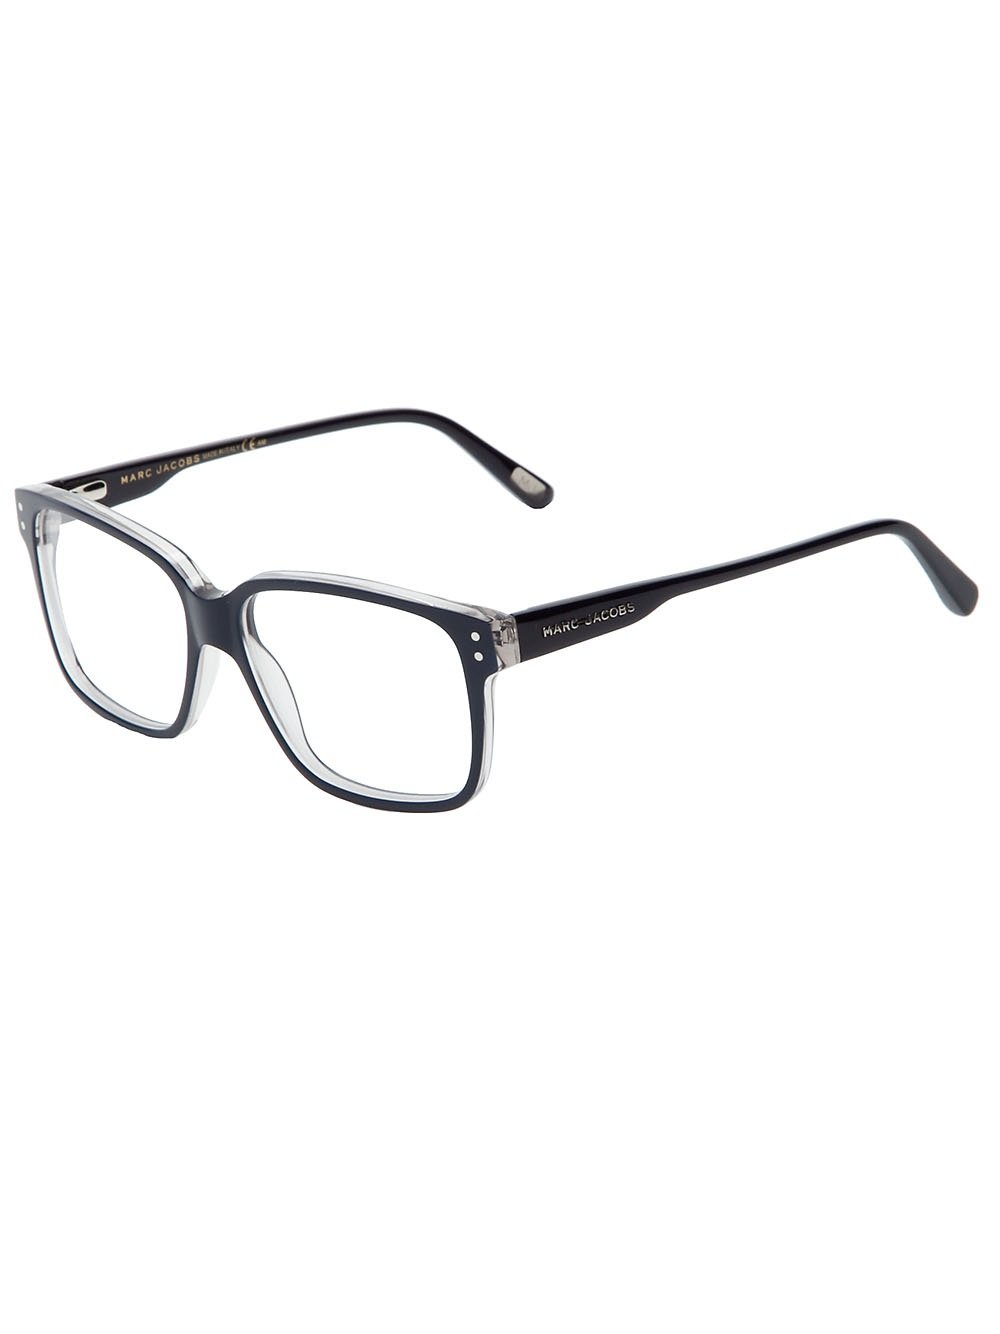 Marc Jacobs Glasses in Blue Lyst